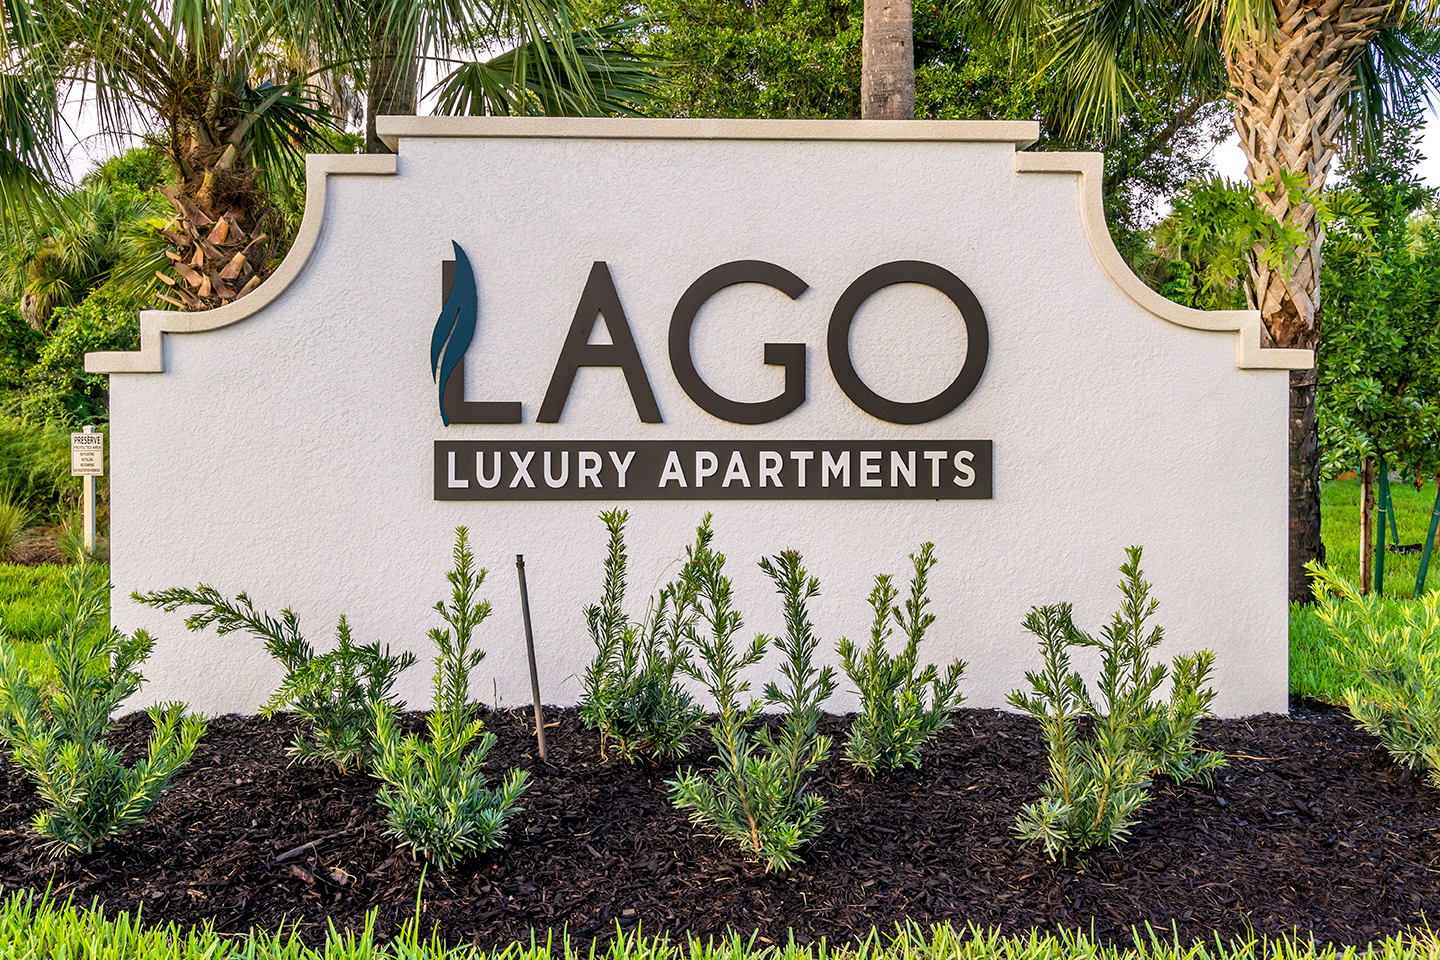 Monument sign for Lago luxury apartment community in Naples